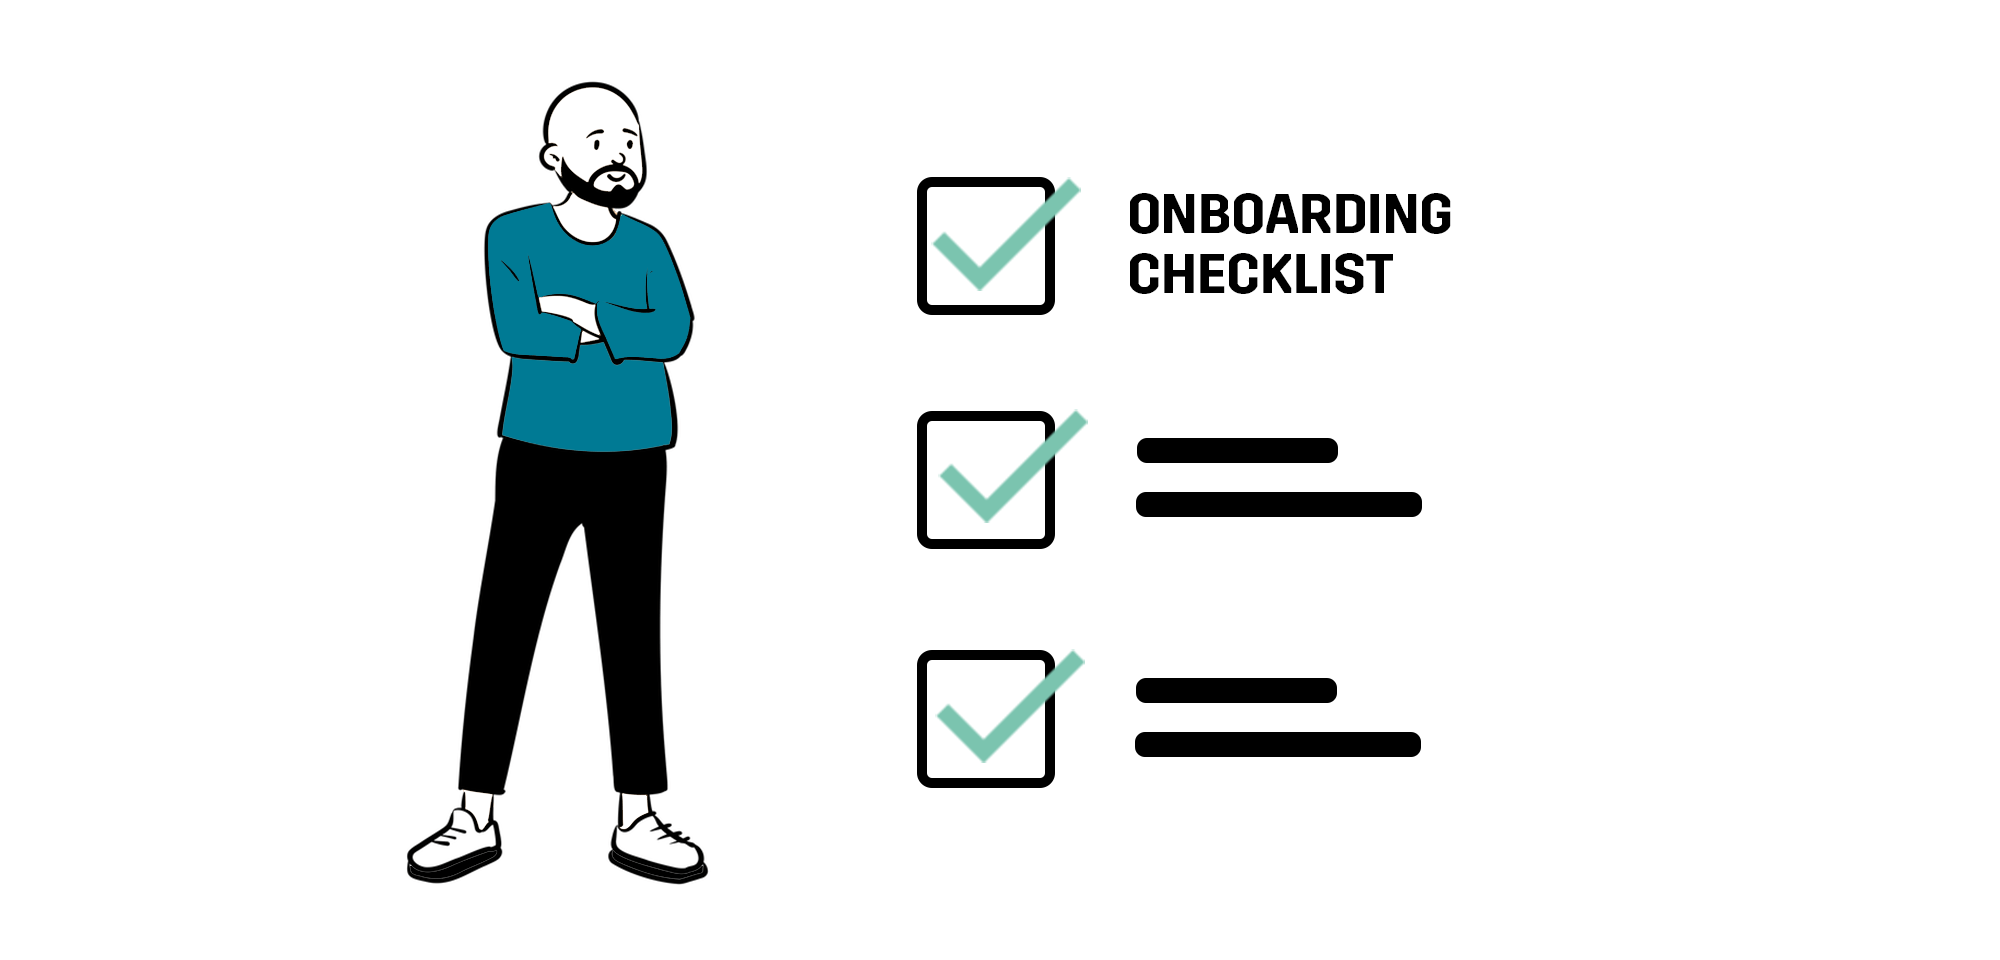 candidate-onboarding-process-checklist-illustration